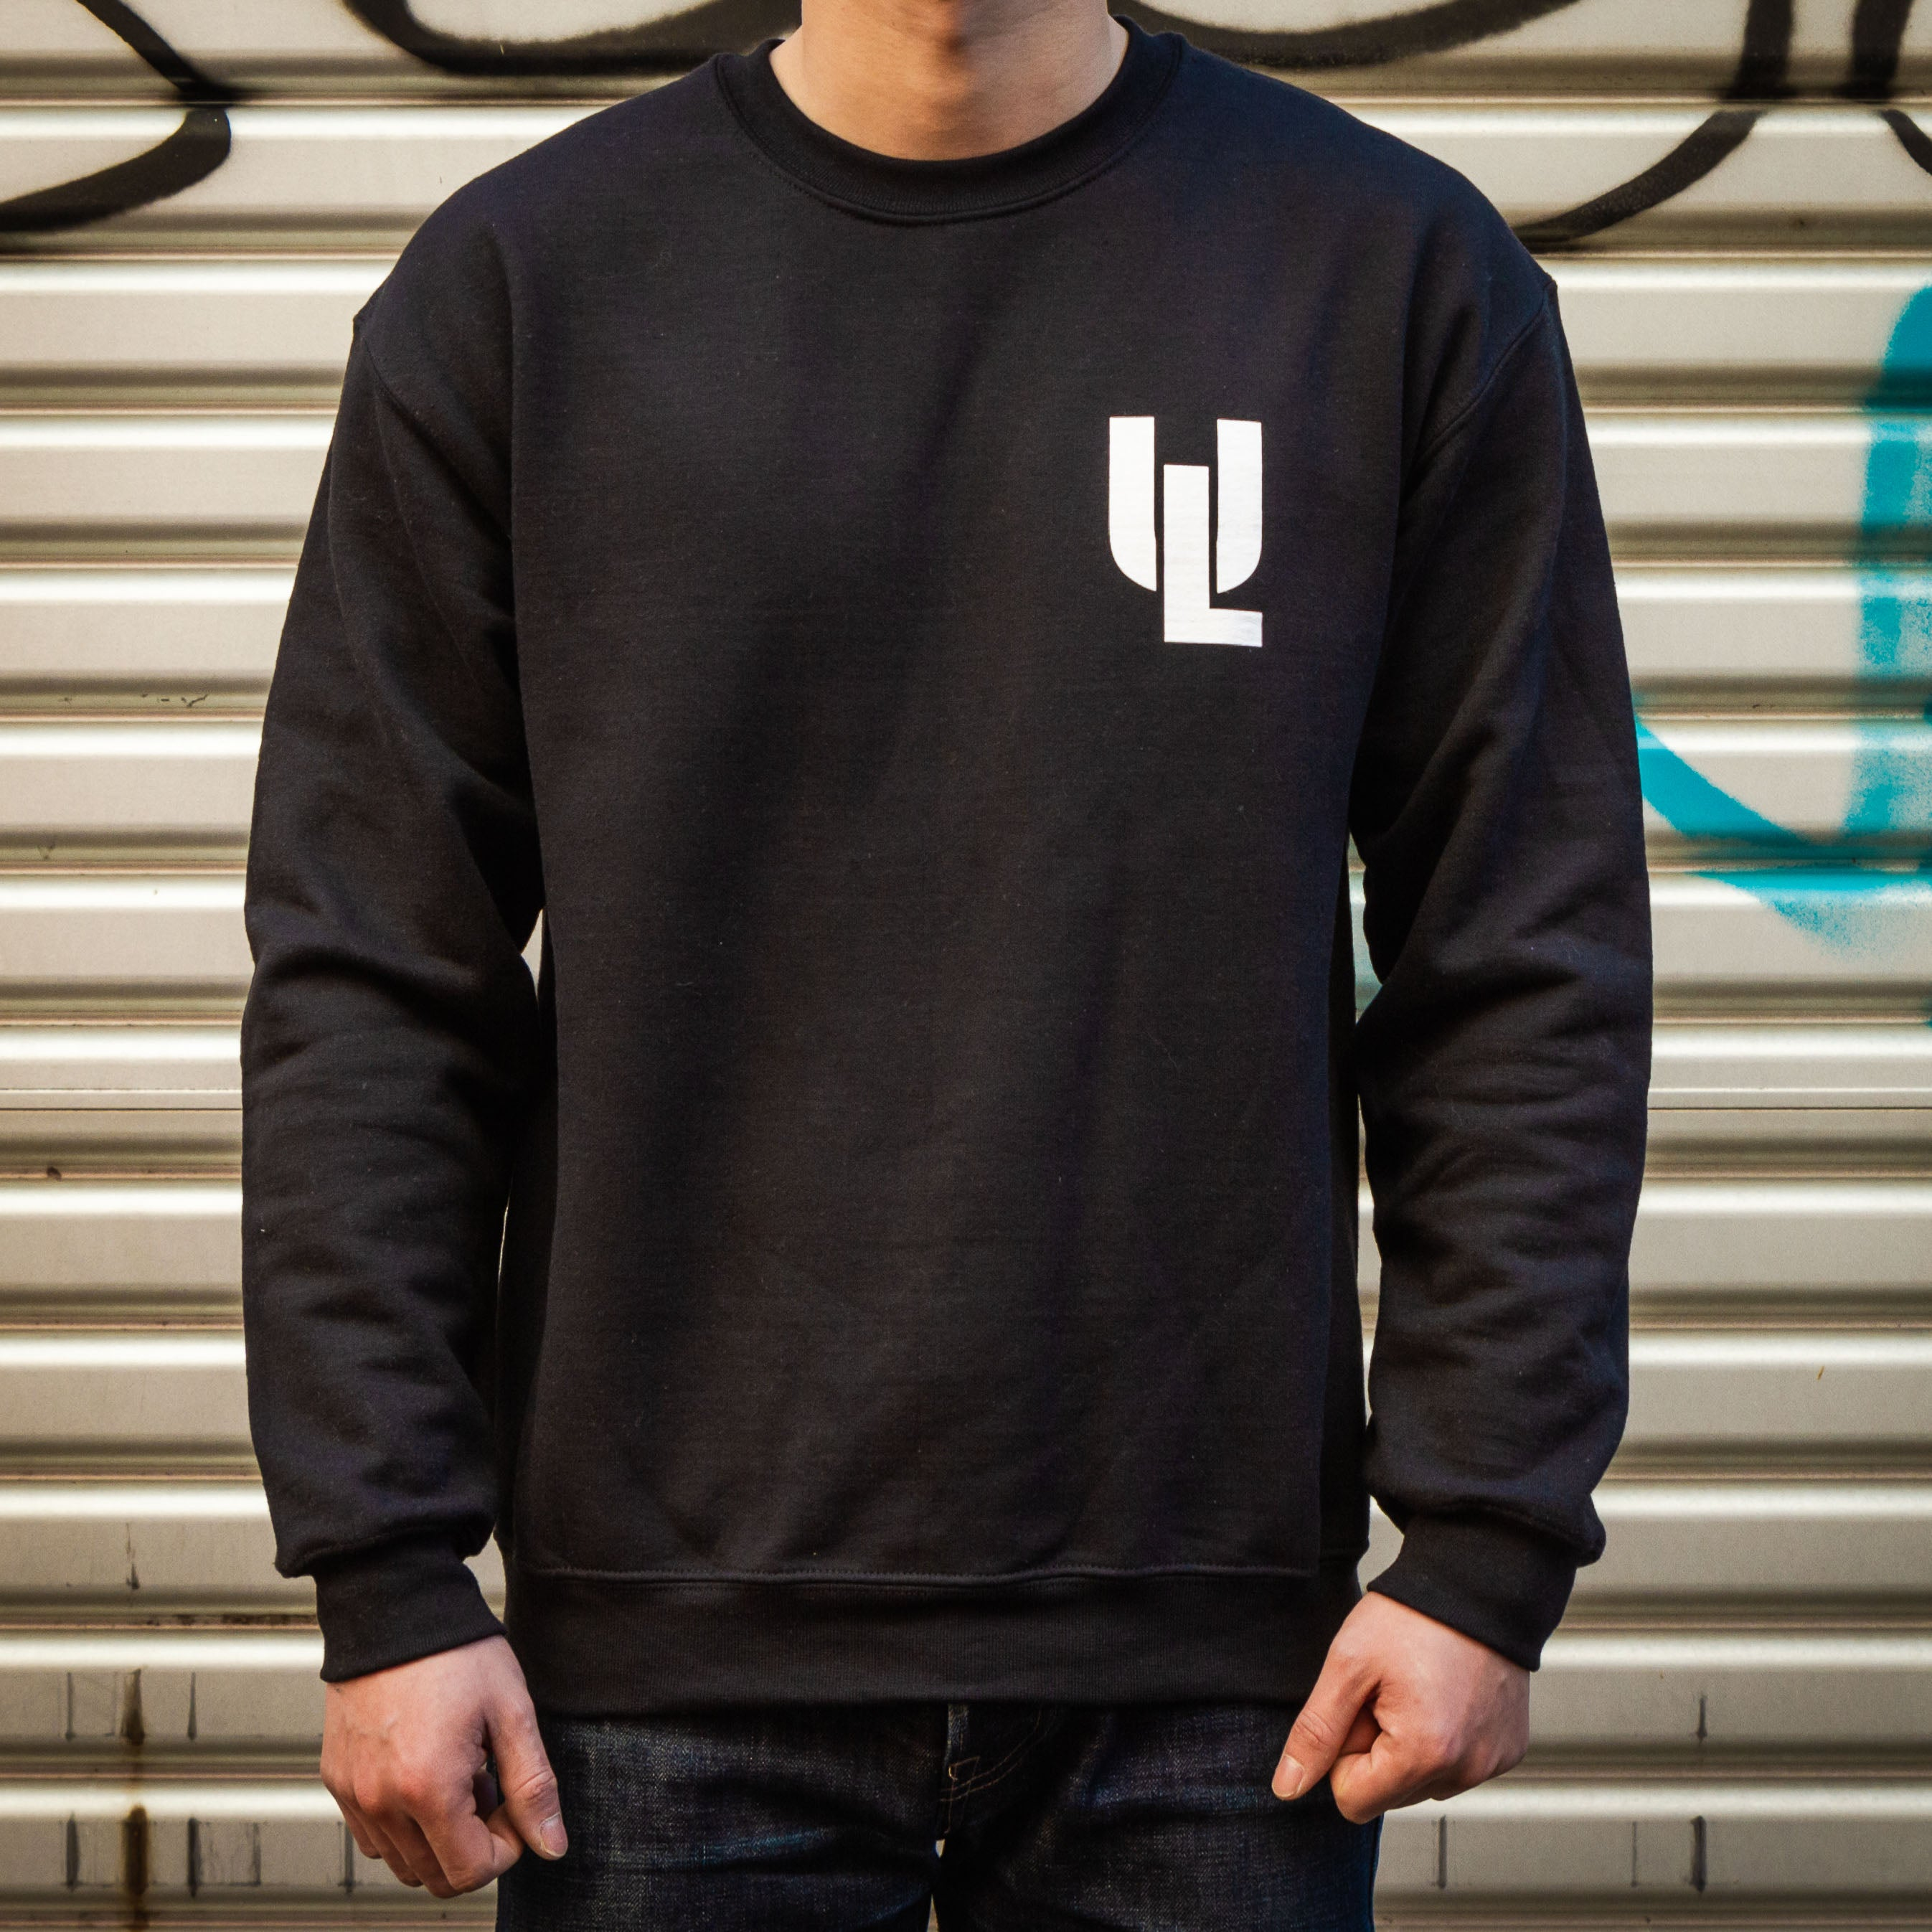 URBAN LUPE Store Sweatshirt in Black